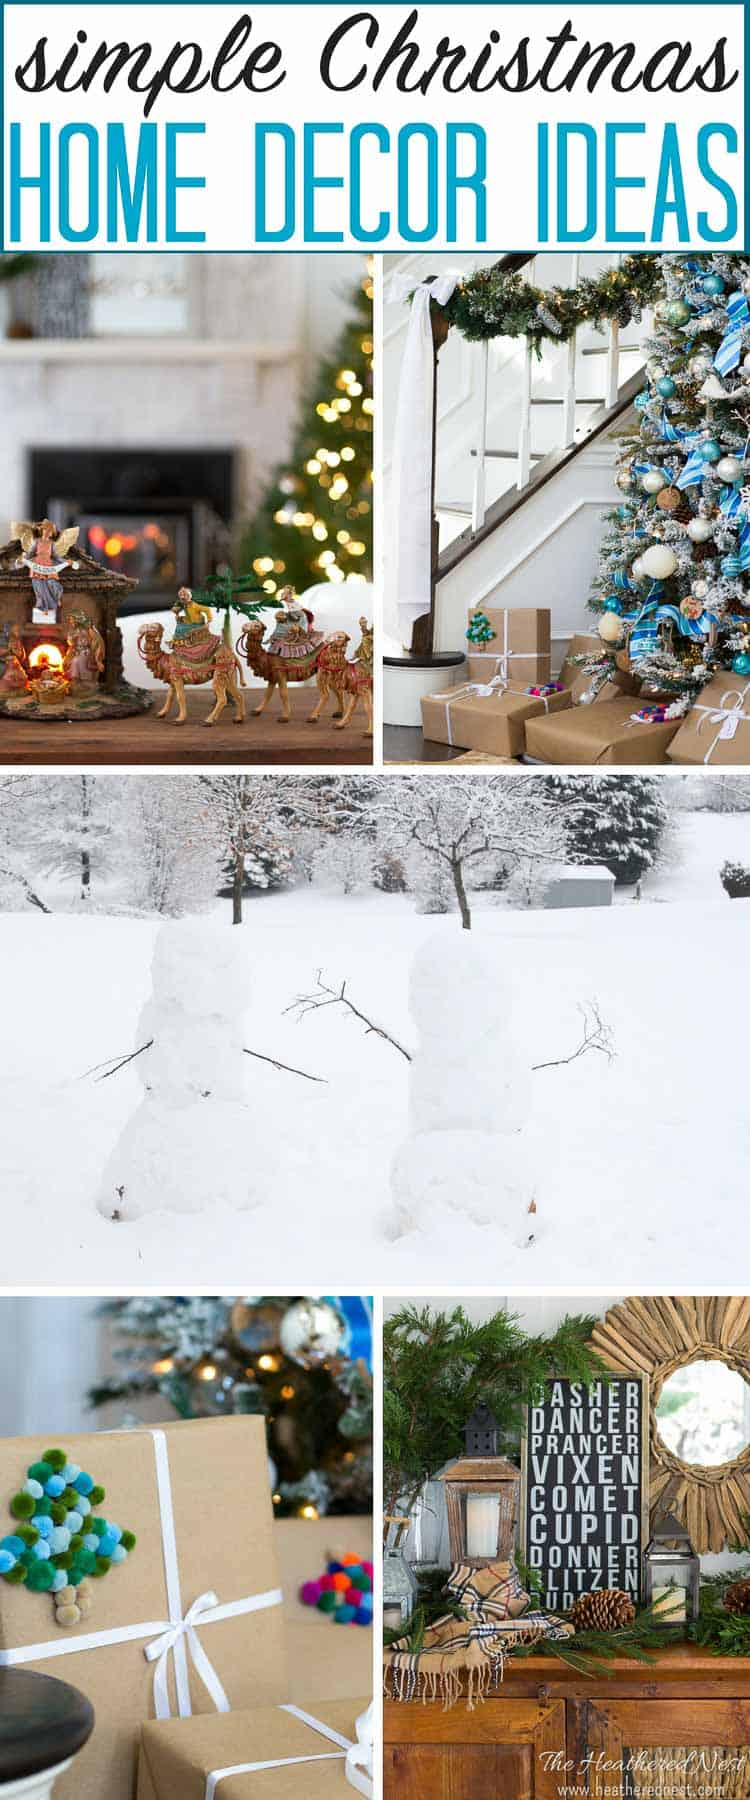 simple and classic christmas home decor ideas...lovely holiday home tour!! simple and classic christmas home decor ideas...lovely holiday home tour!! #DIYchristmashomedecorideas #simplechristmashomedecor #elegantchristmashomedecor #christmashomedecoronabudget